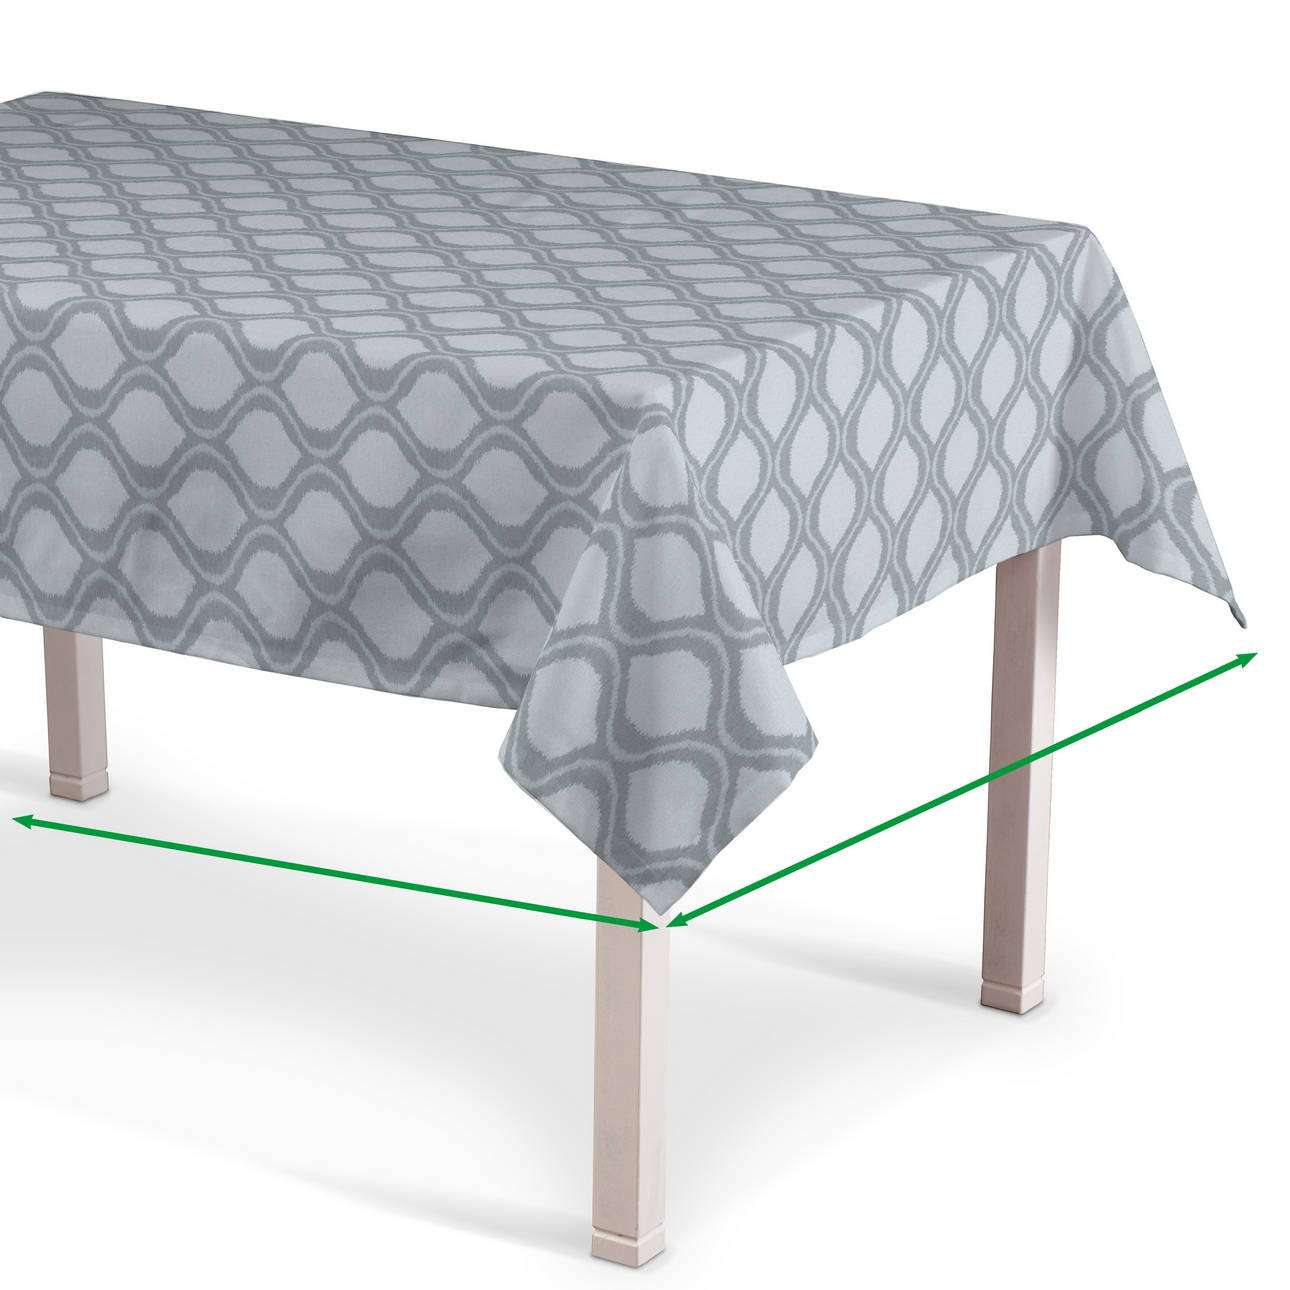 Rectangular tablecloth in collection Damasco, fabric: 142-54